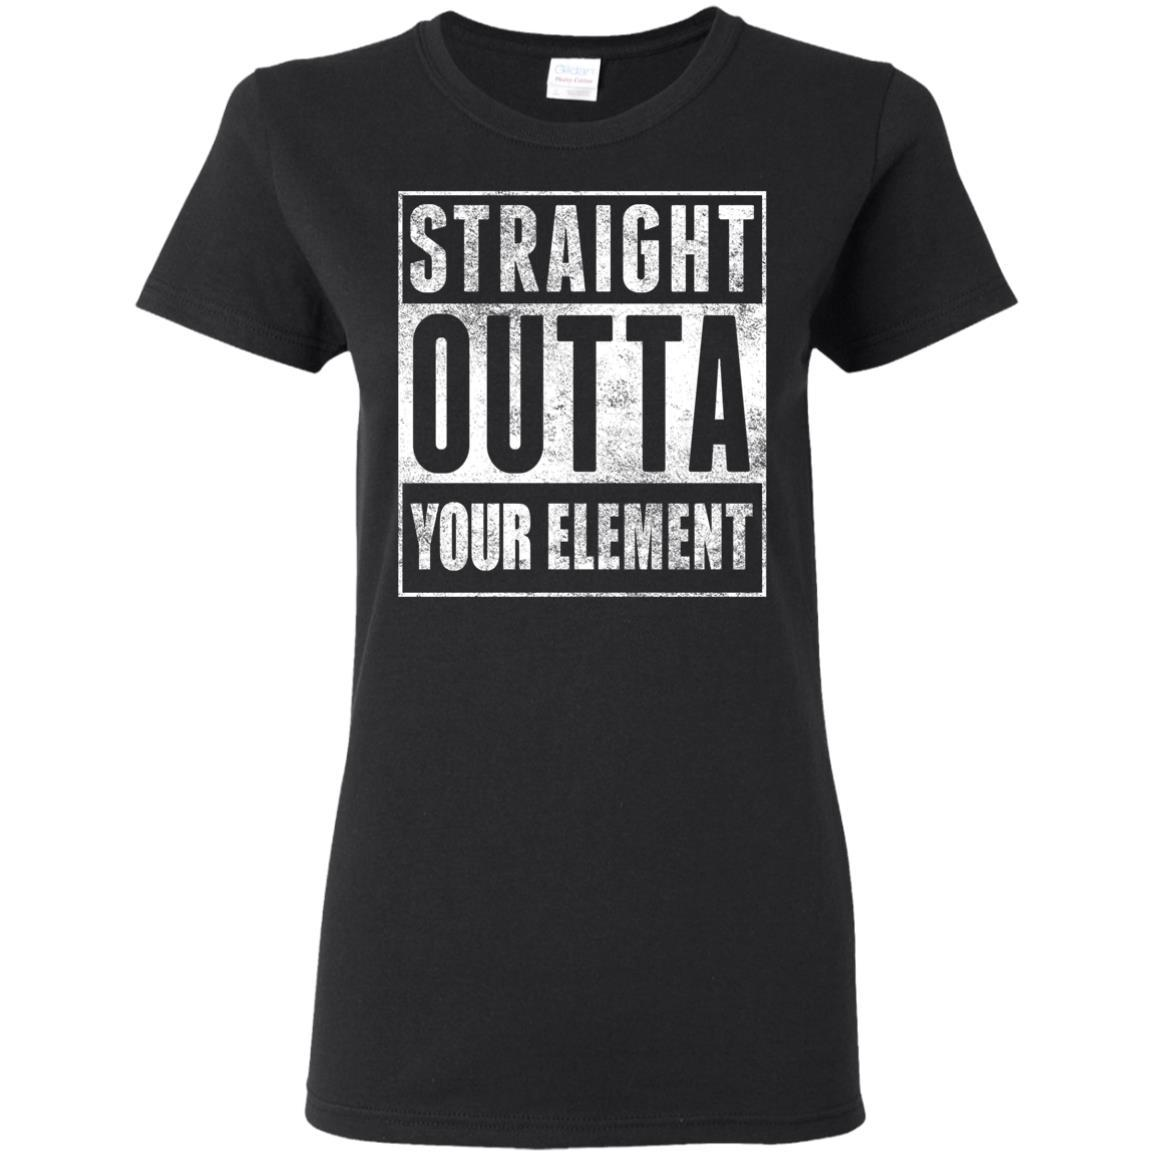 T-Shirts - Outta Your Element Ladies Tee